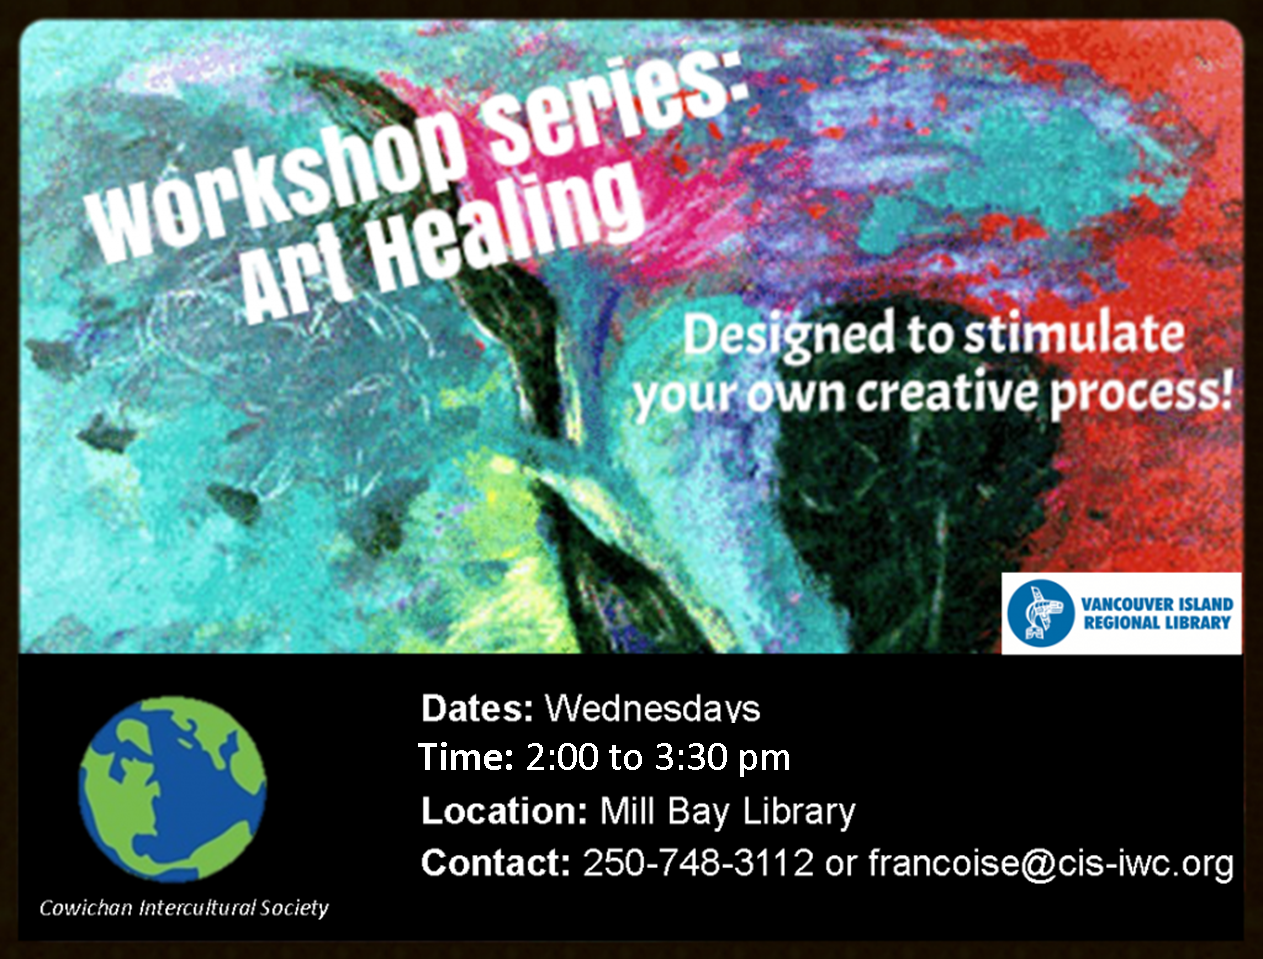 Art Healing Series @ Mill Bay Library